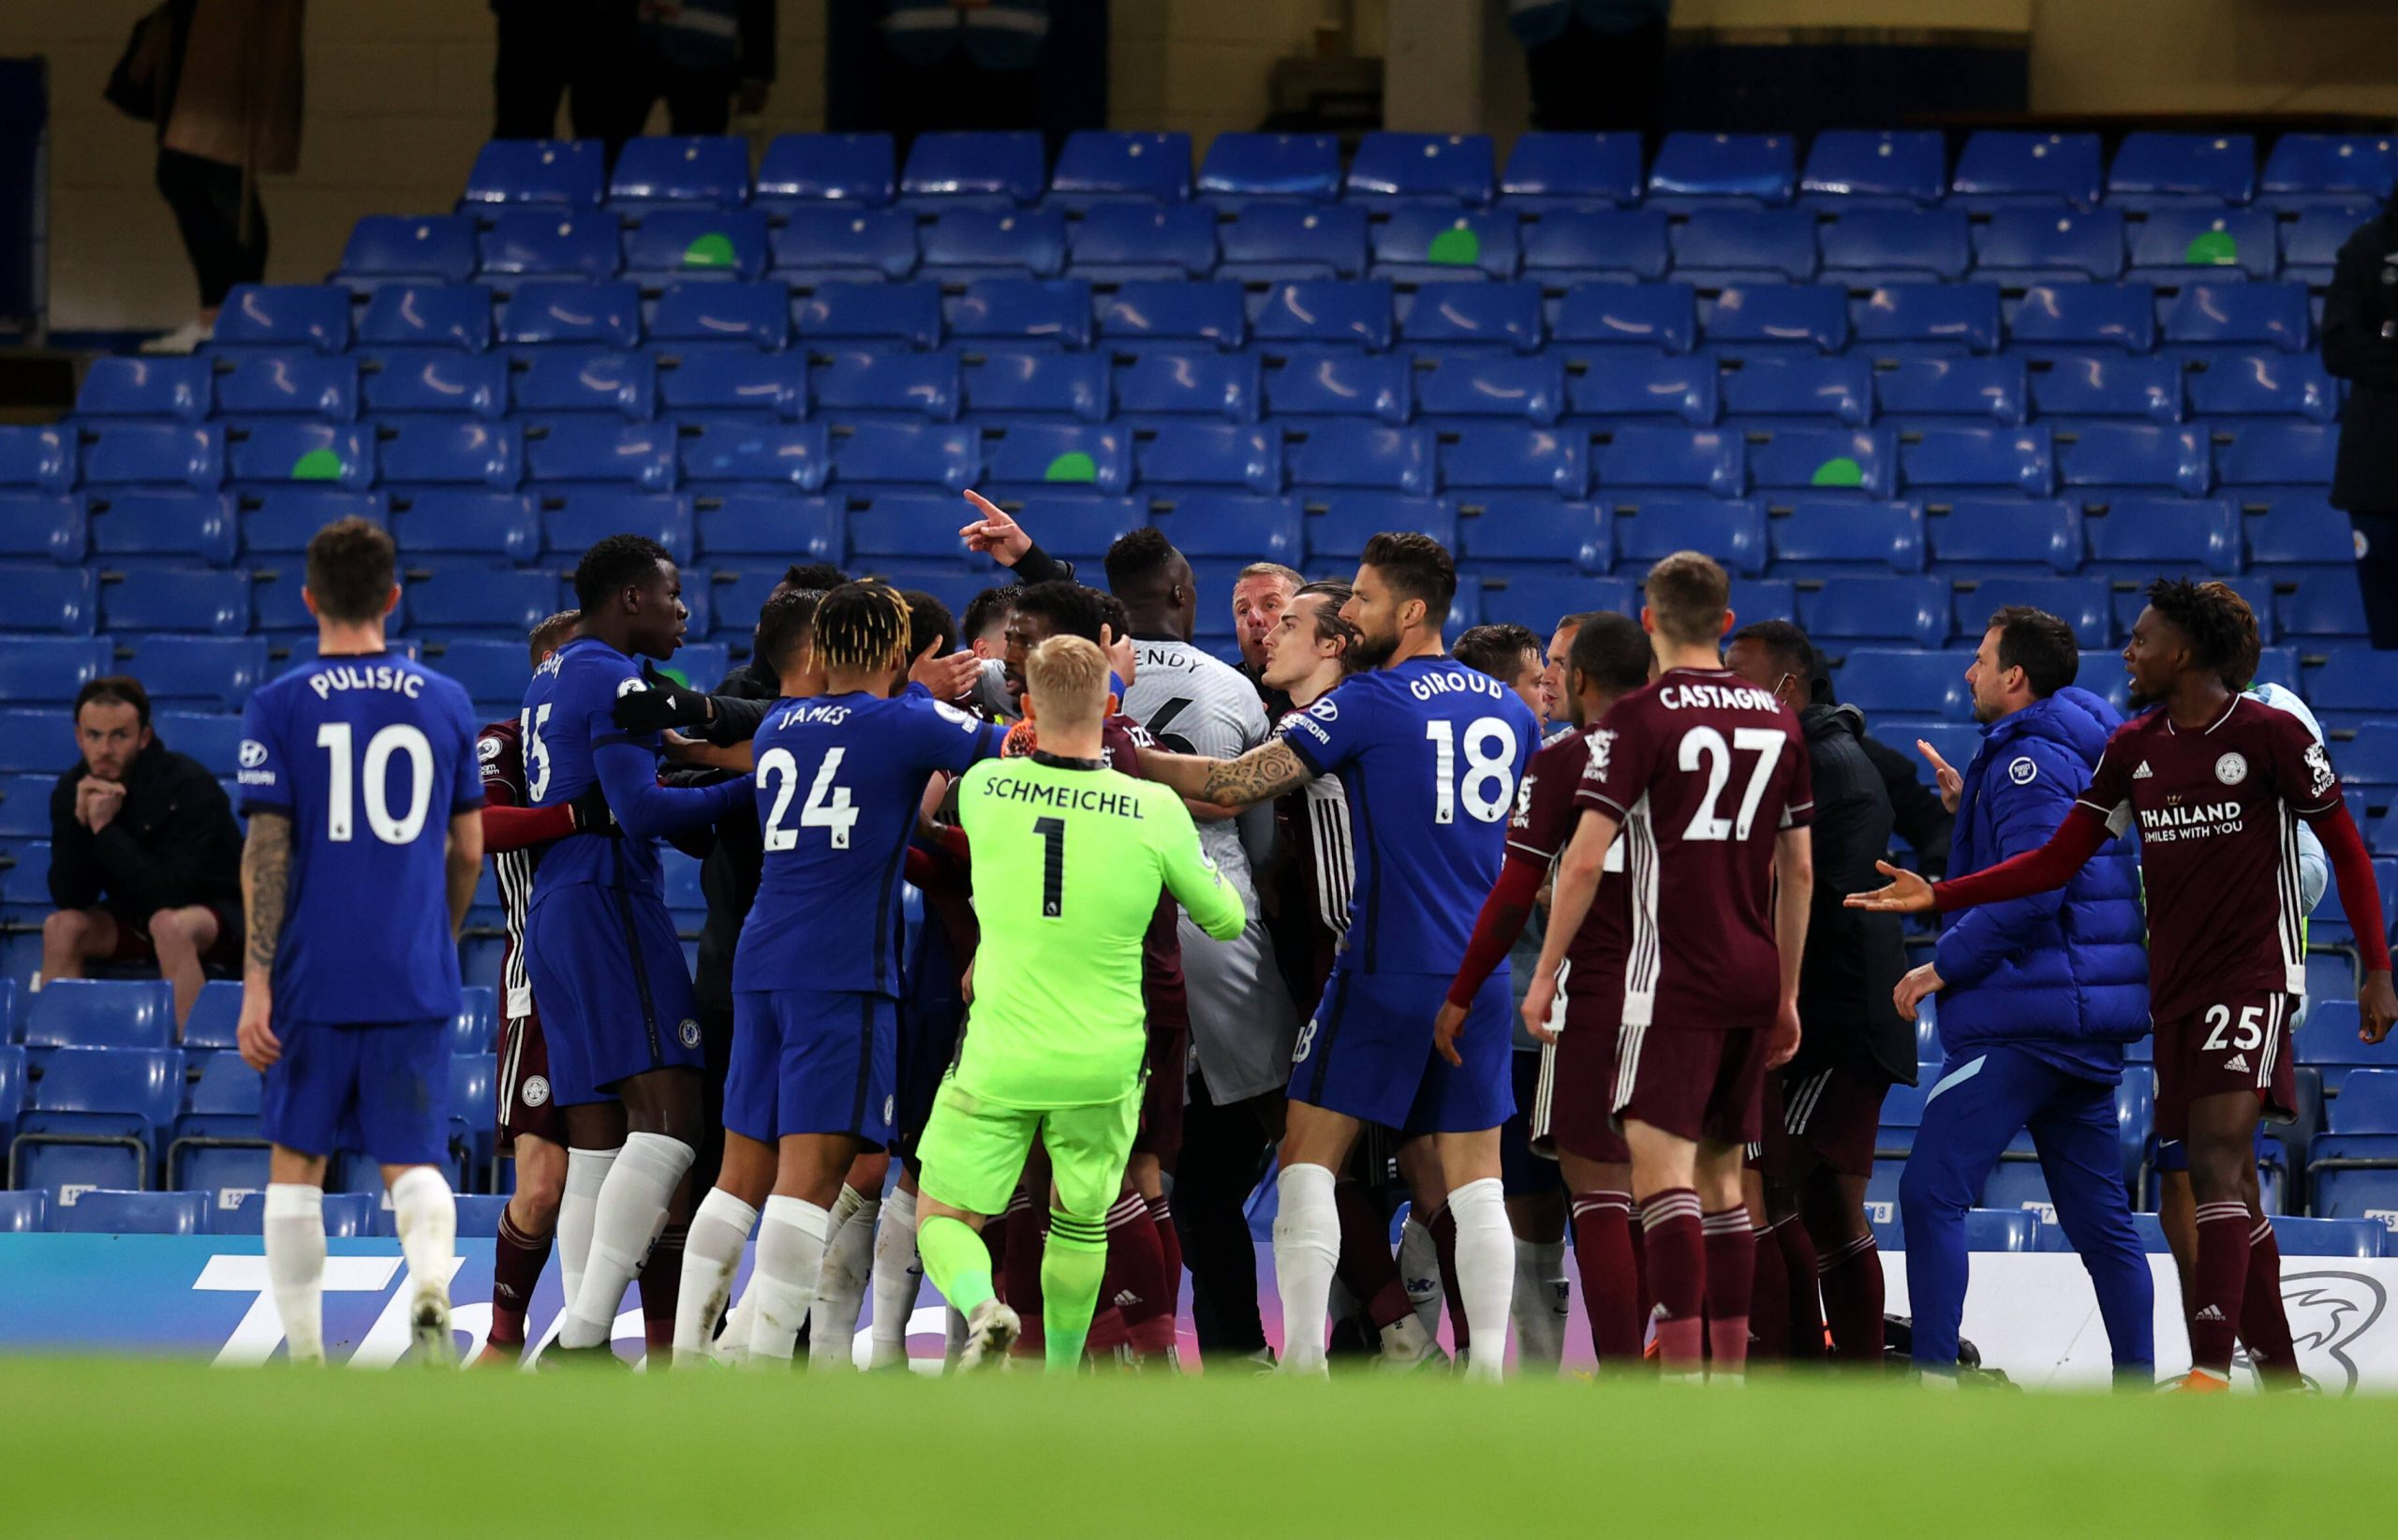 Tempers flare in Chelsea v Leicester City at Stamford Bridge.